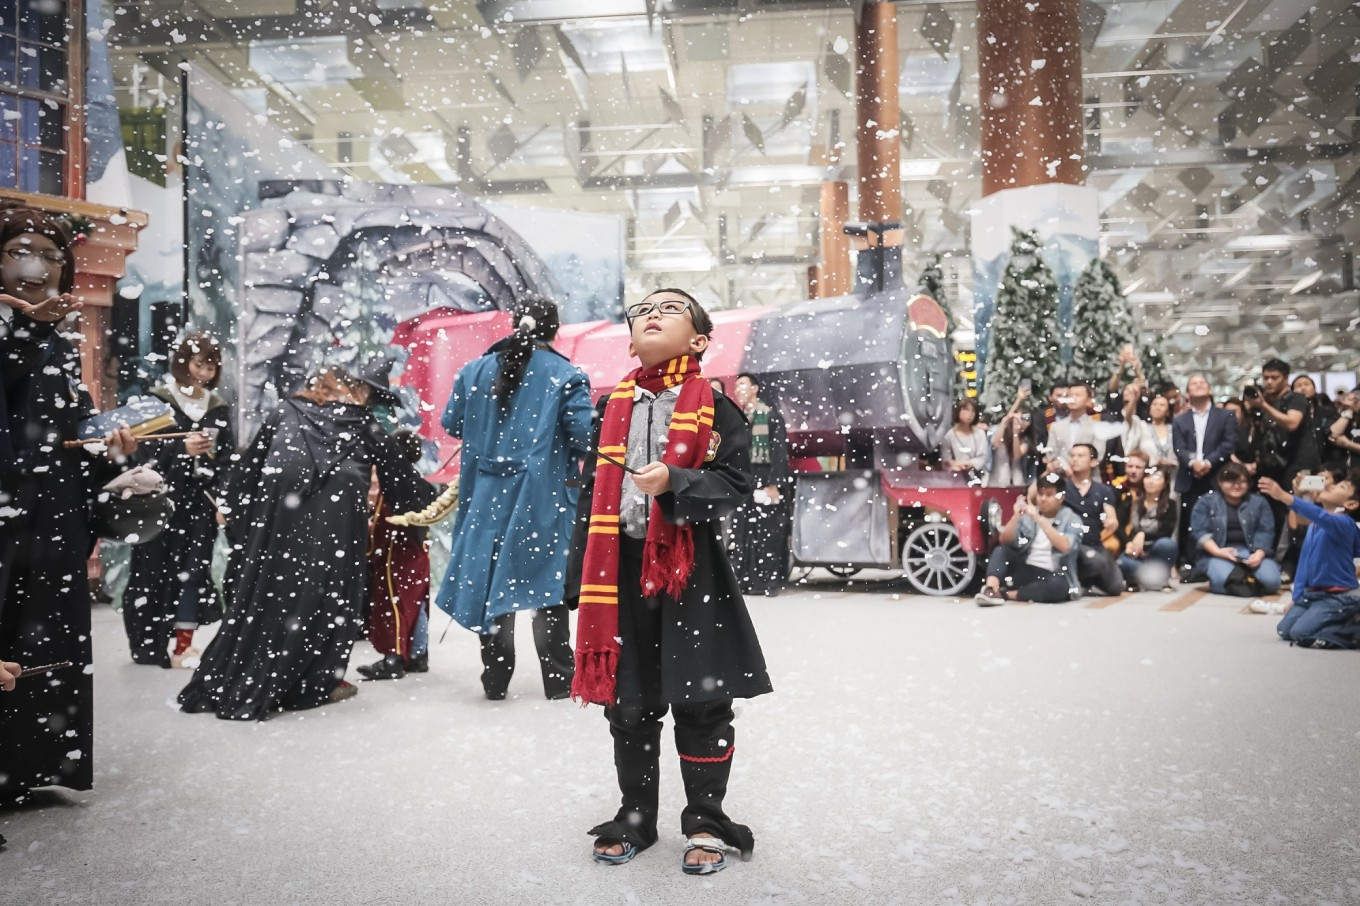 A young fan is enthralled by the snow at a wintry Hogsmeade Village-inspired setup at Changi Airport's Terminal 3 Departure Hall. Image: Changi Airport/File